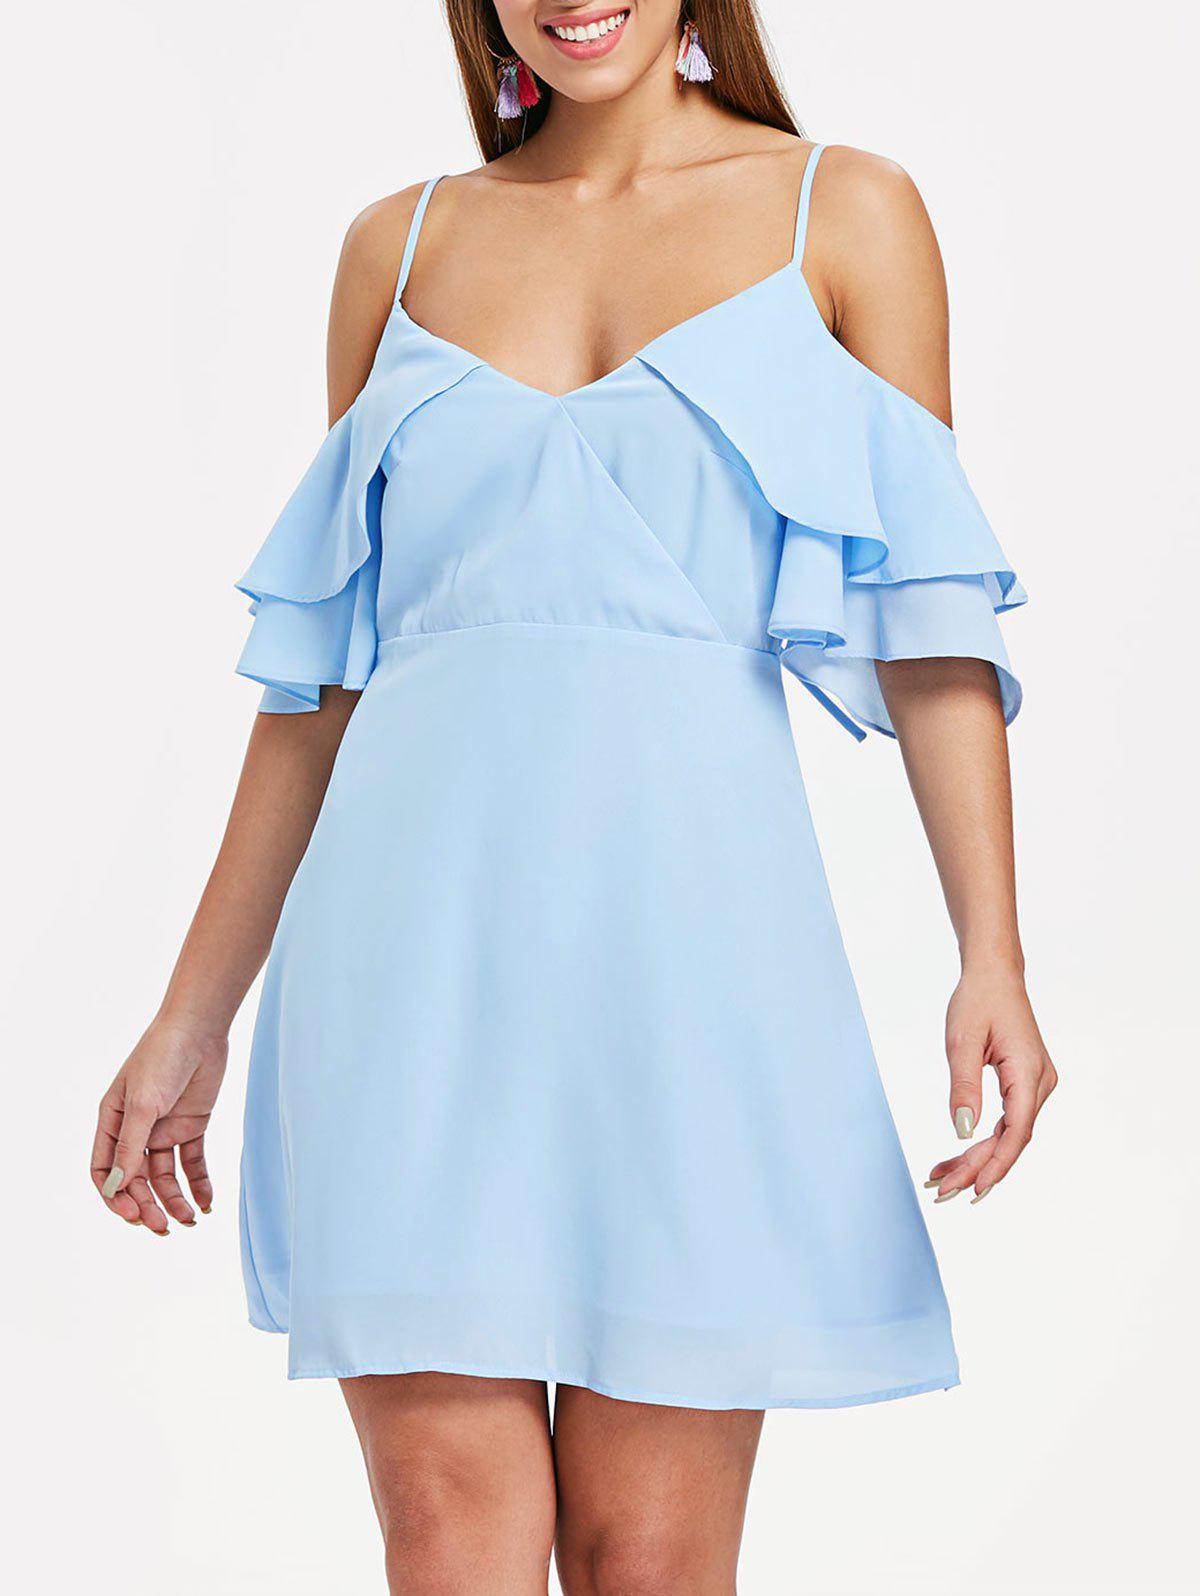 New Ruffle Insert Back Cut Out A Line Dress